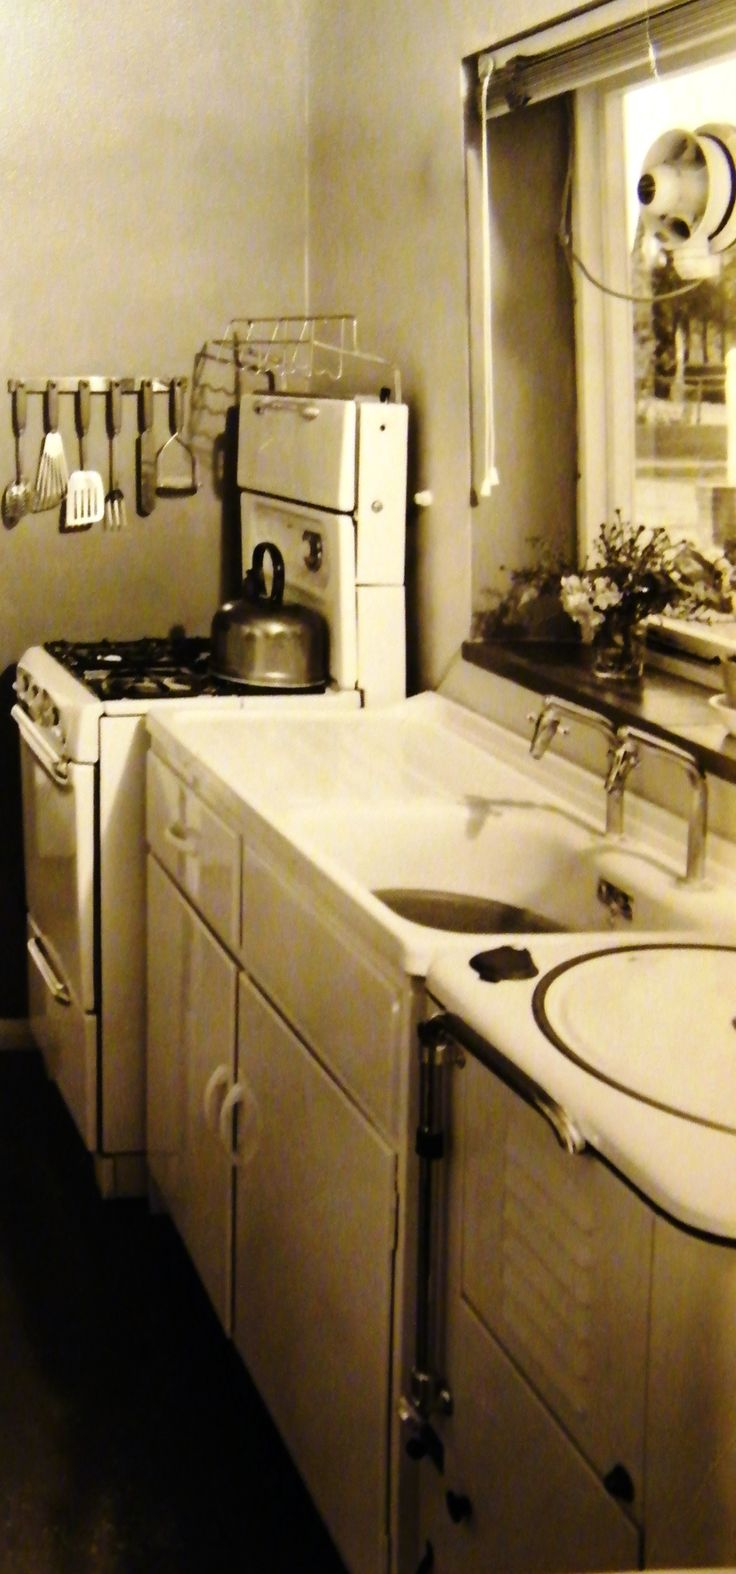 My Great Aunt's Cannon gas cooker in her new home in 1955.